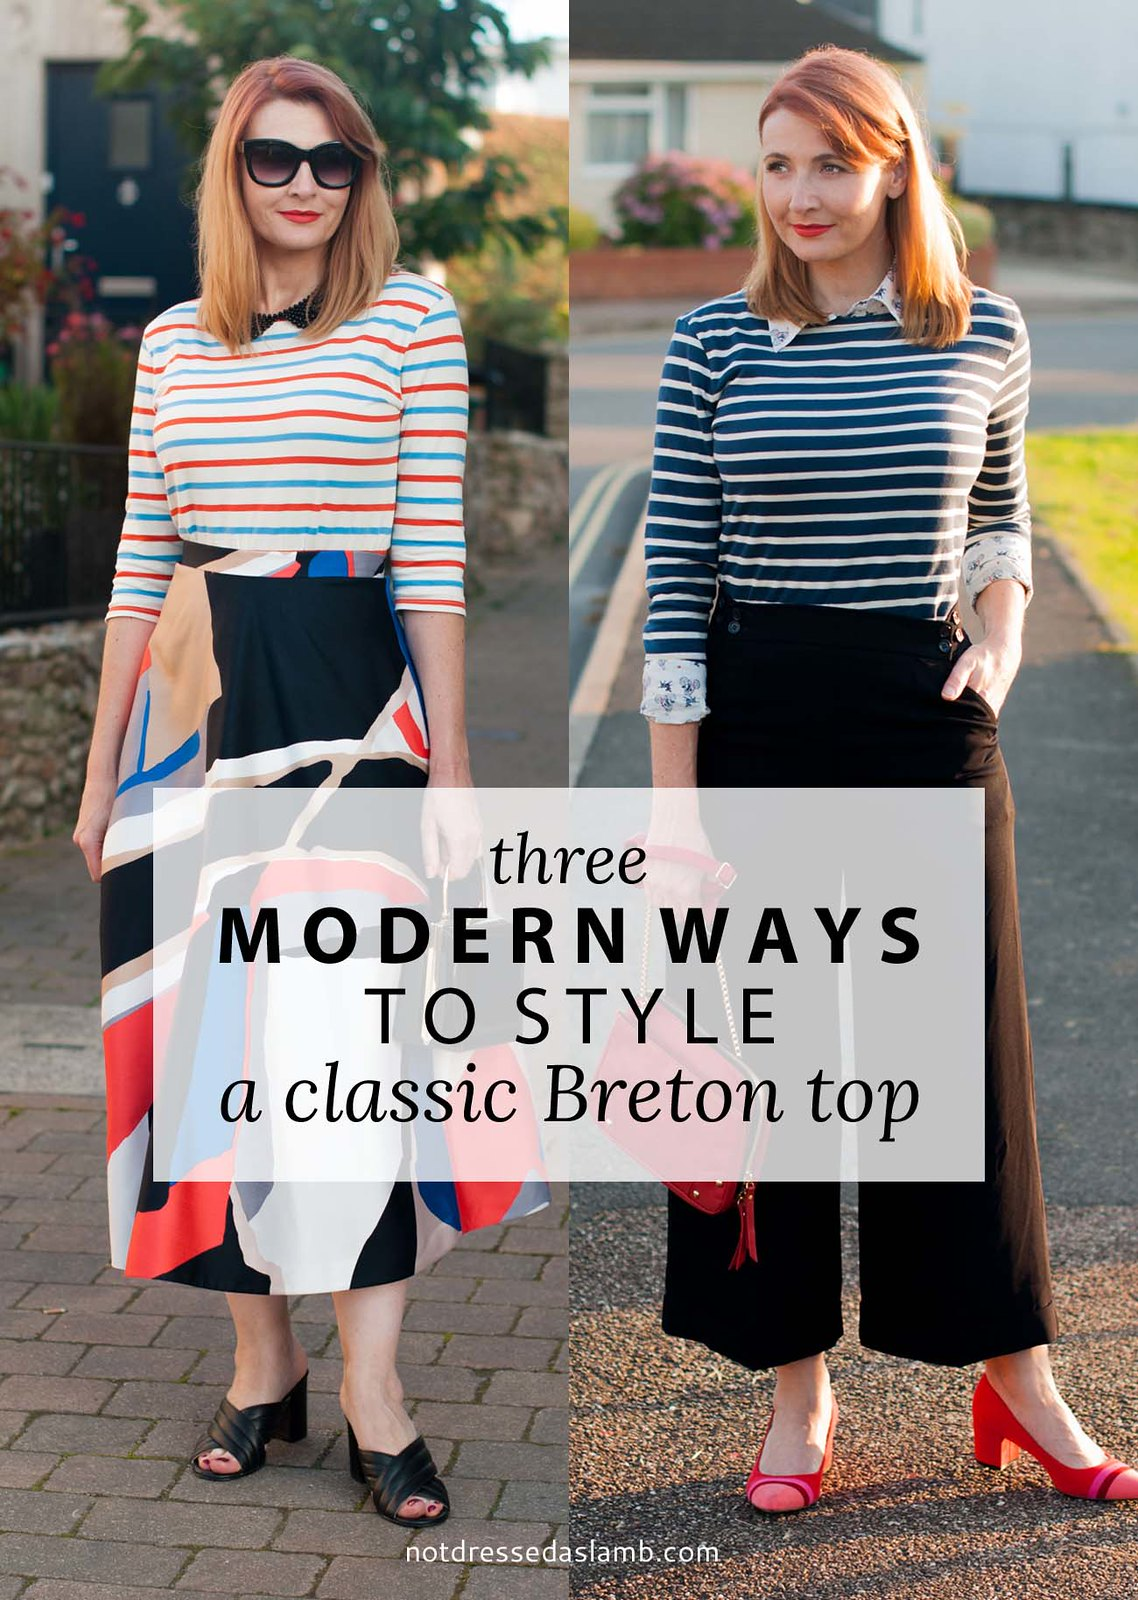 adc5c2ba23 3 creative ways to style a Breton stripe top: Office chic/workwear, ...